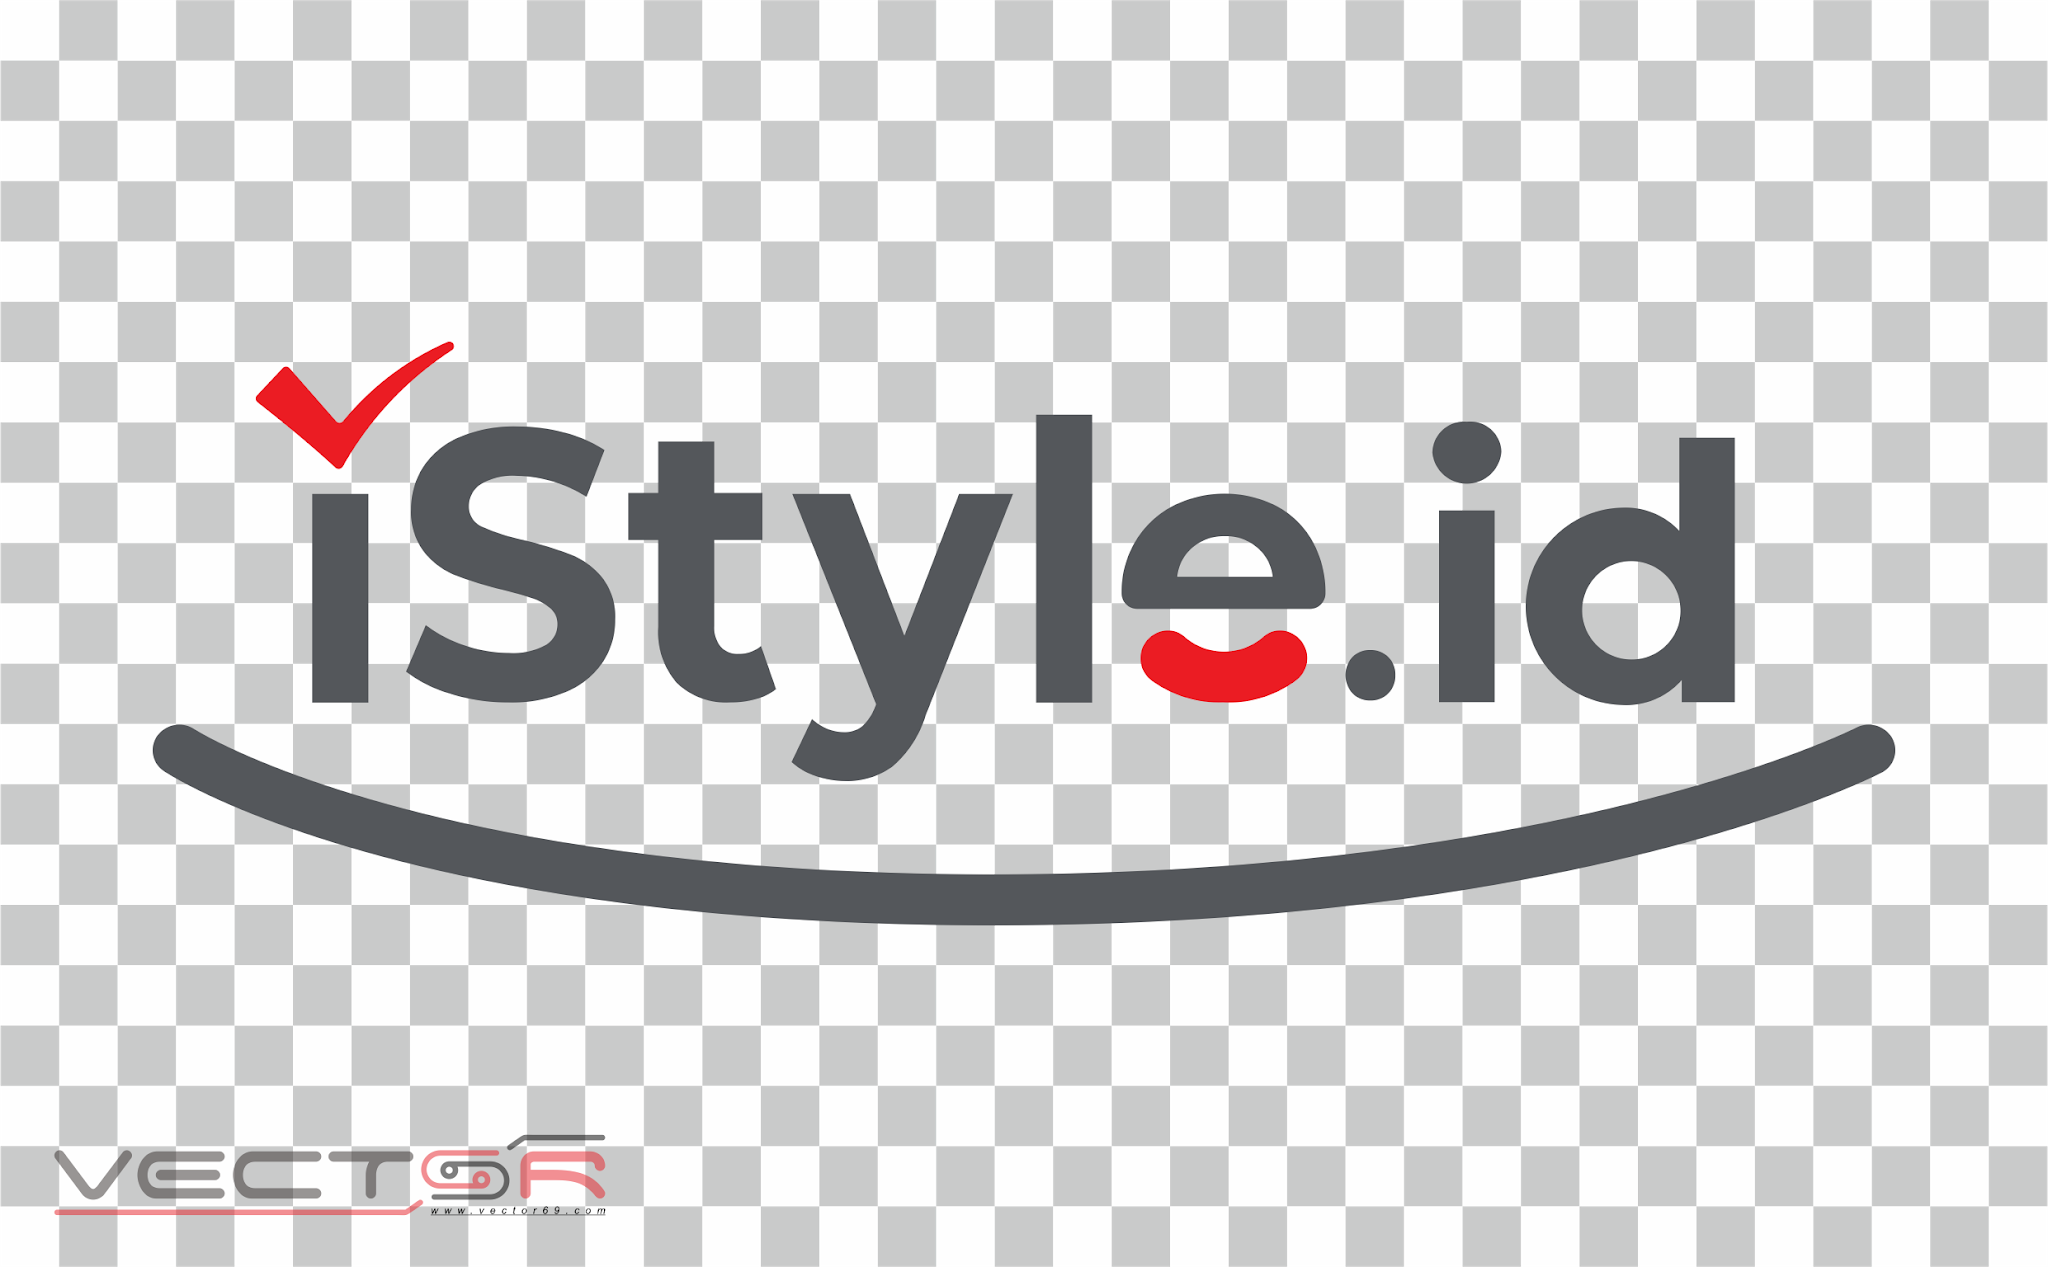 iStyle.id Logo - Download Vector File PNG (Portable Network Graphics)